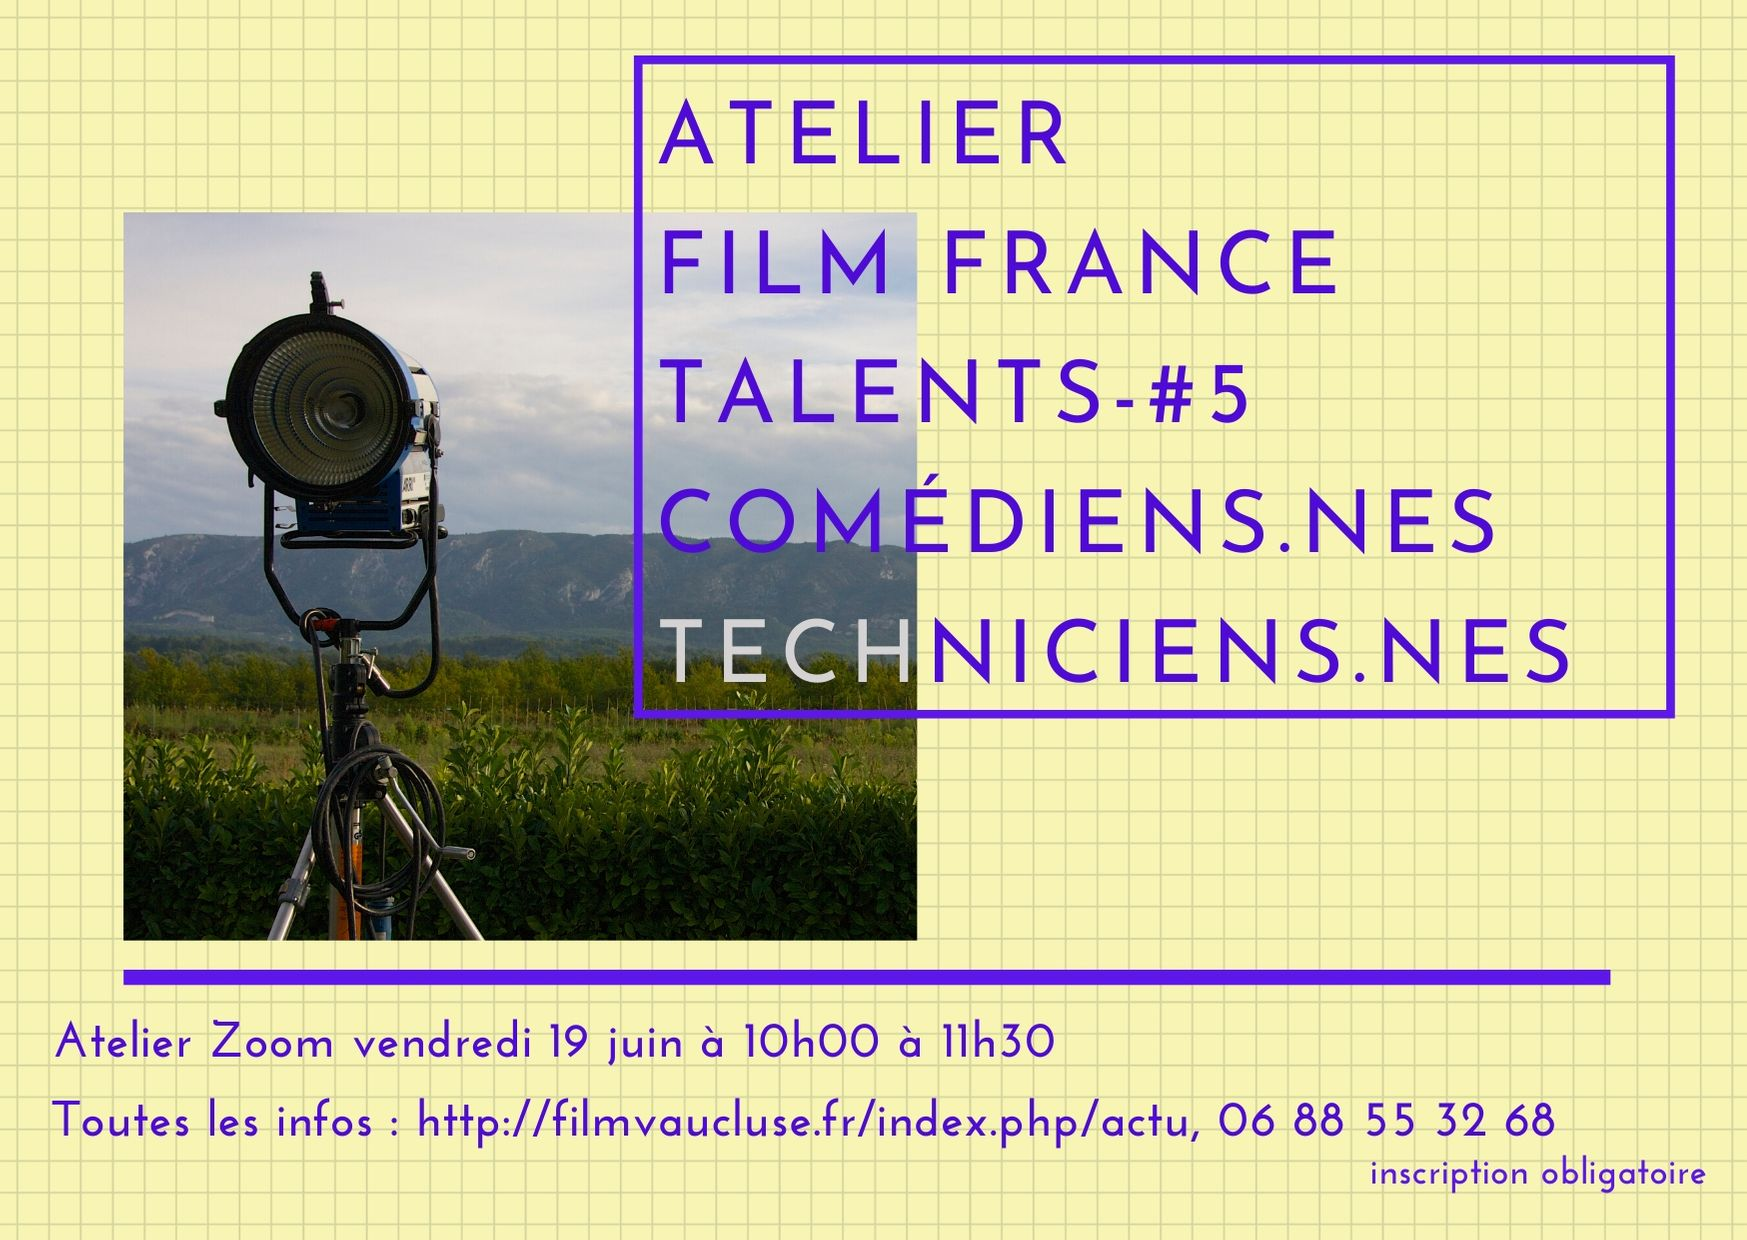 Atelier zoom base Film France Talents -#5 techniciens-nes /Artistes-interprètes